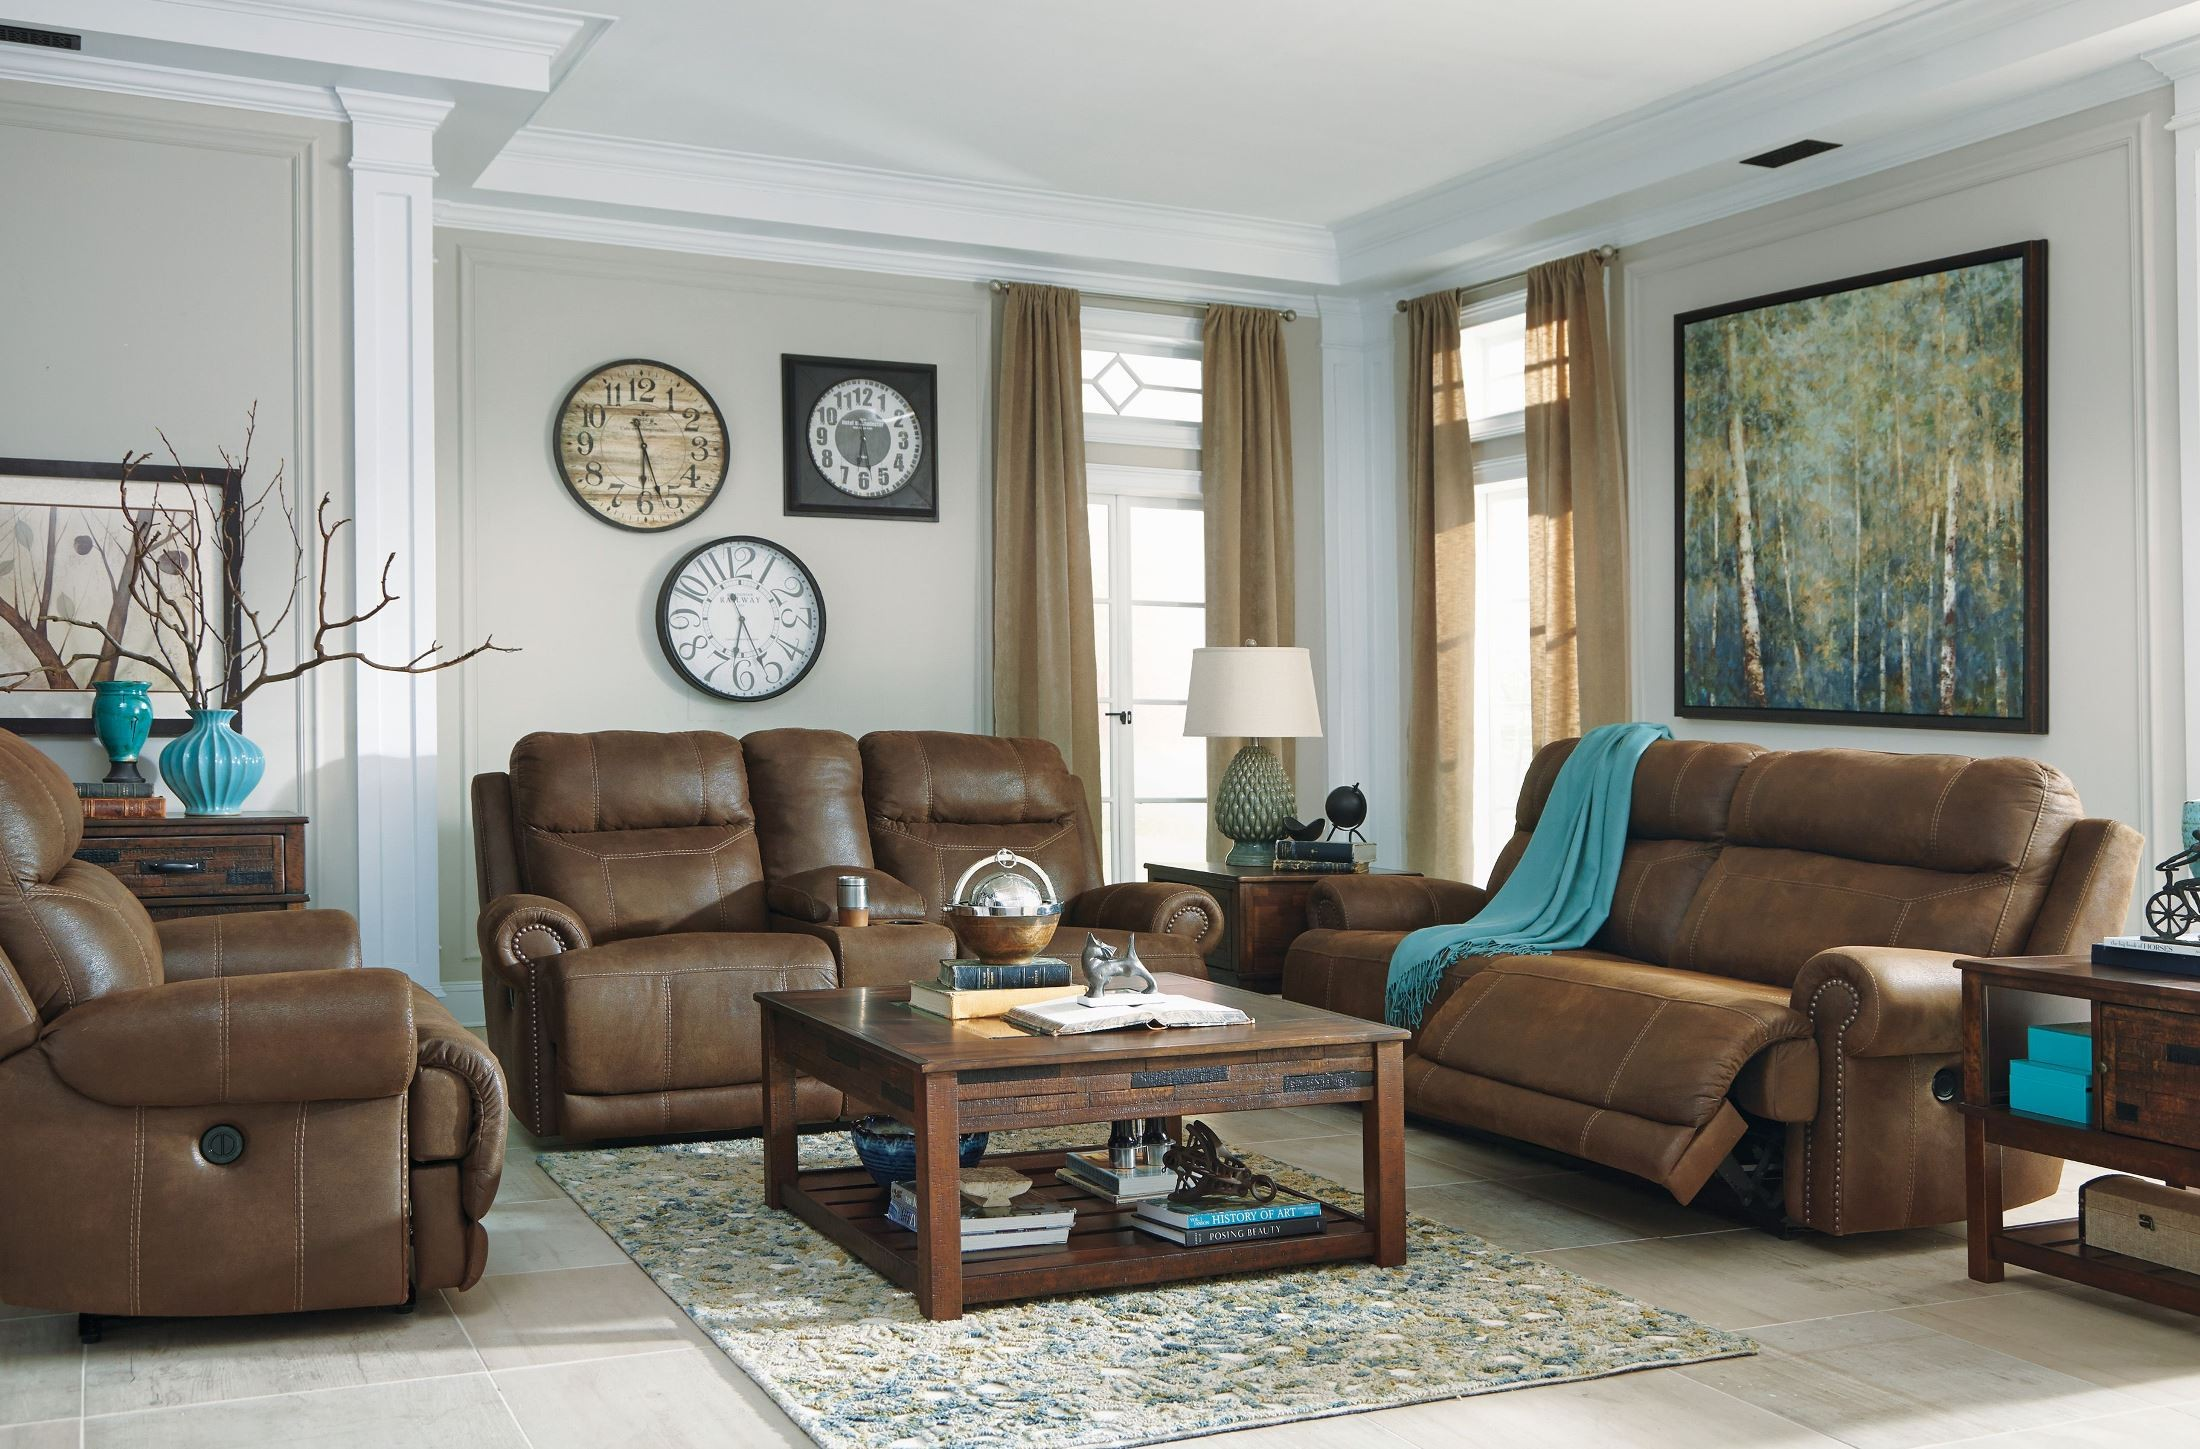 Ashley Furniture Sectional Sofas with Recliners | MediasInfos.com ~ Home  Trends Magazine Online